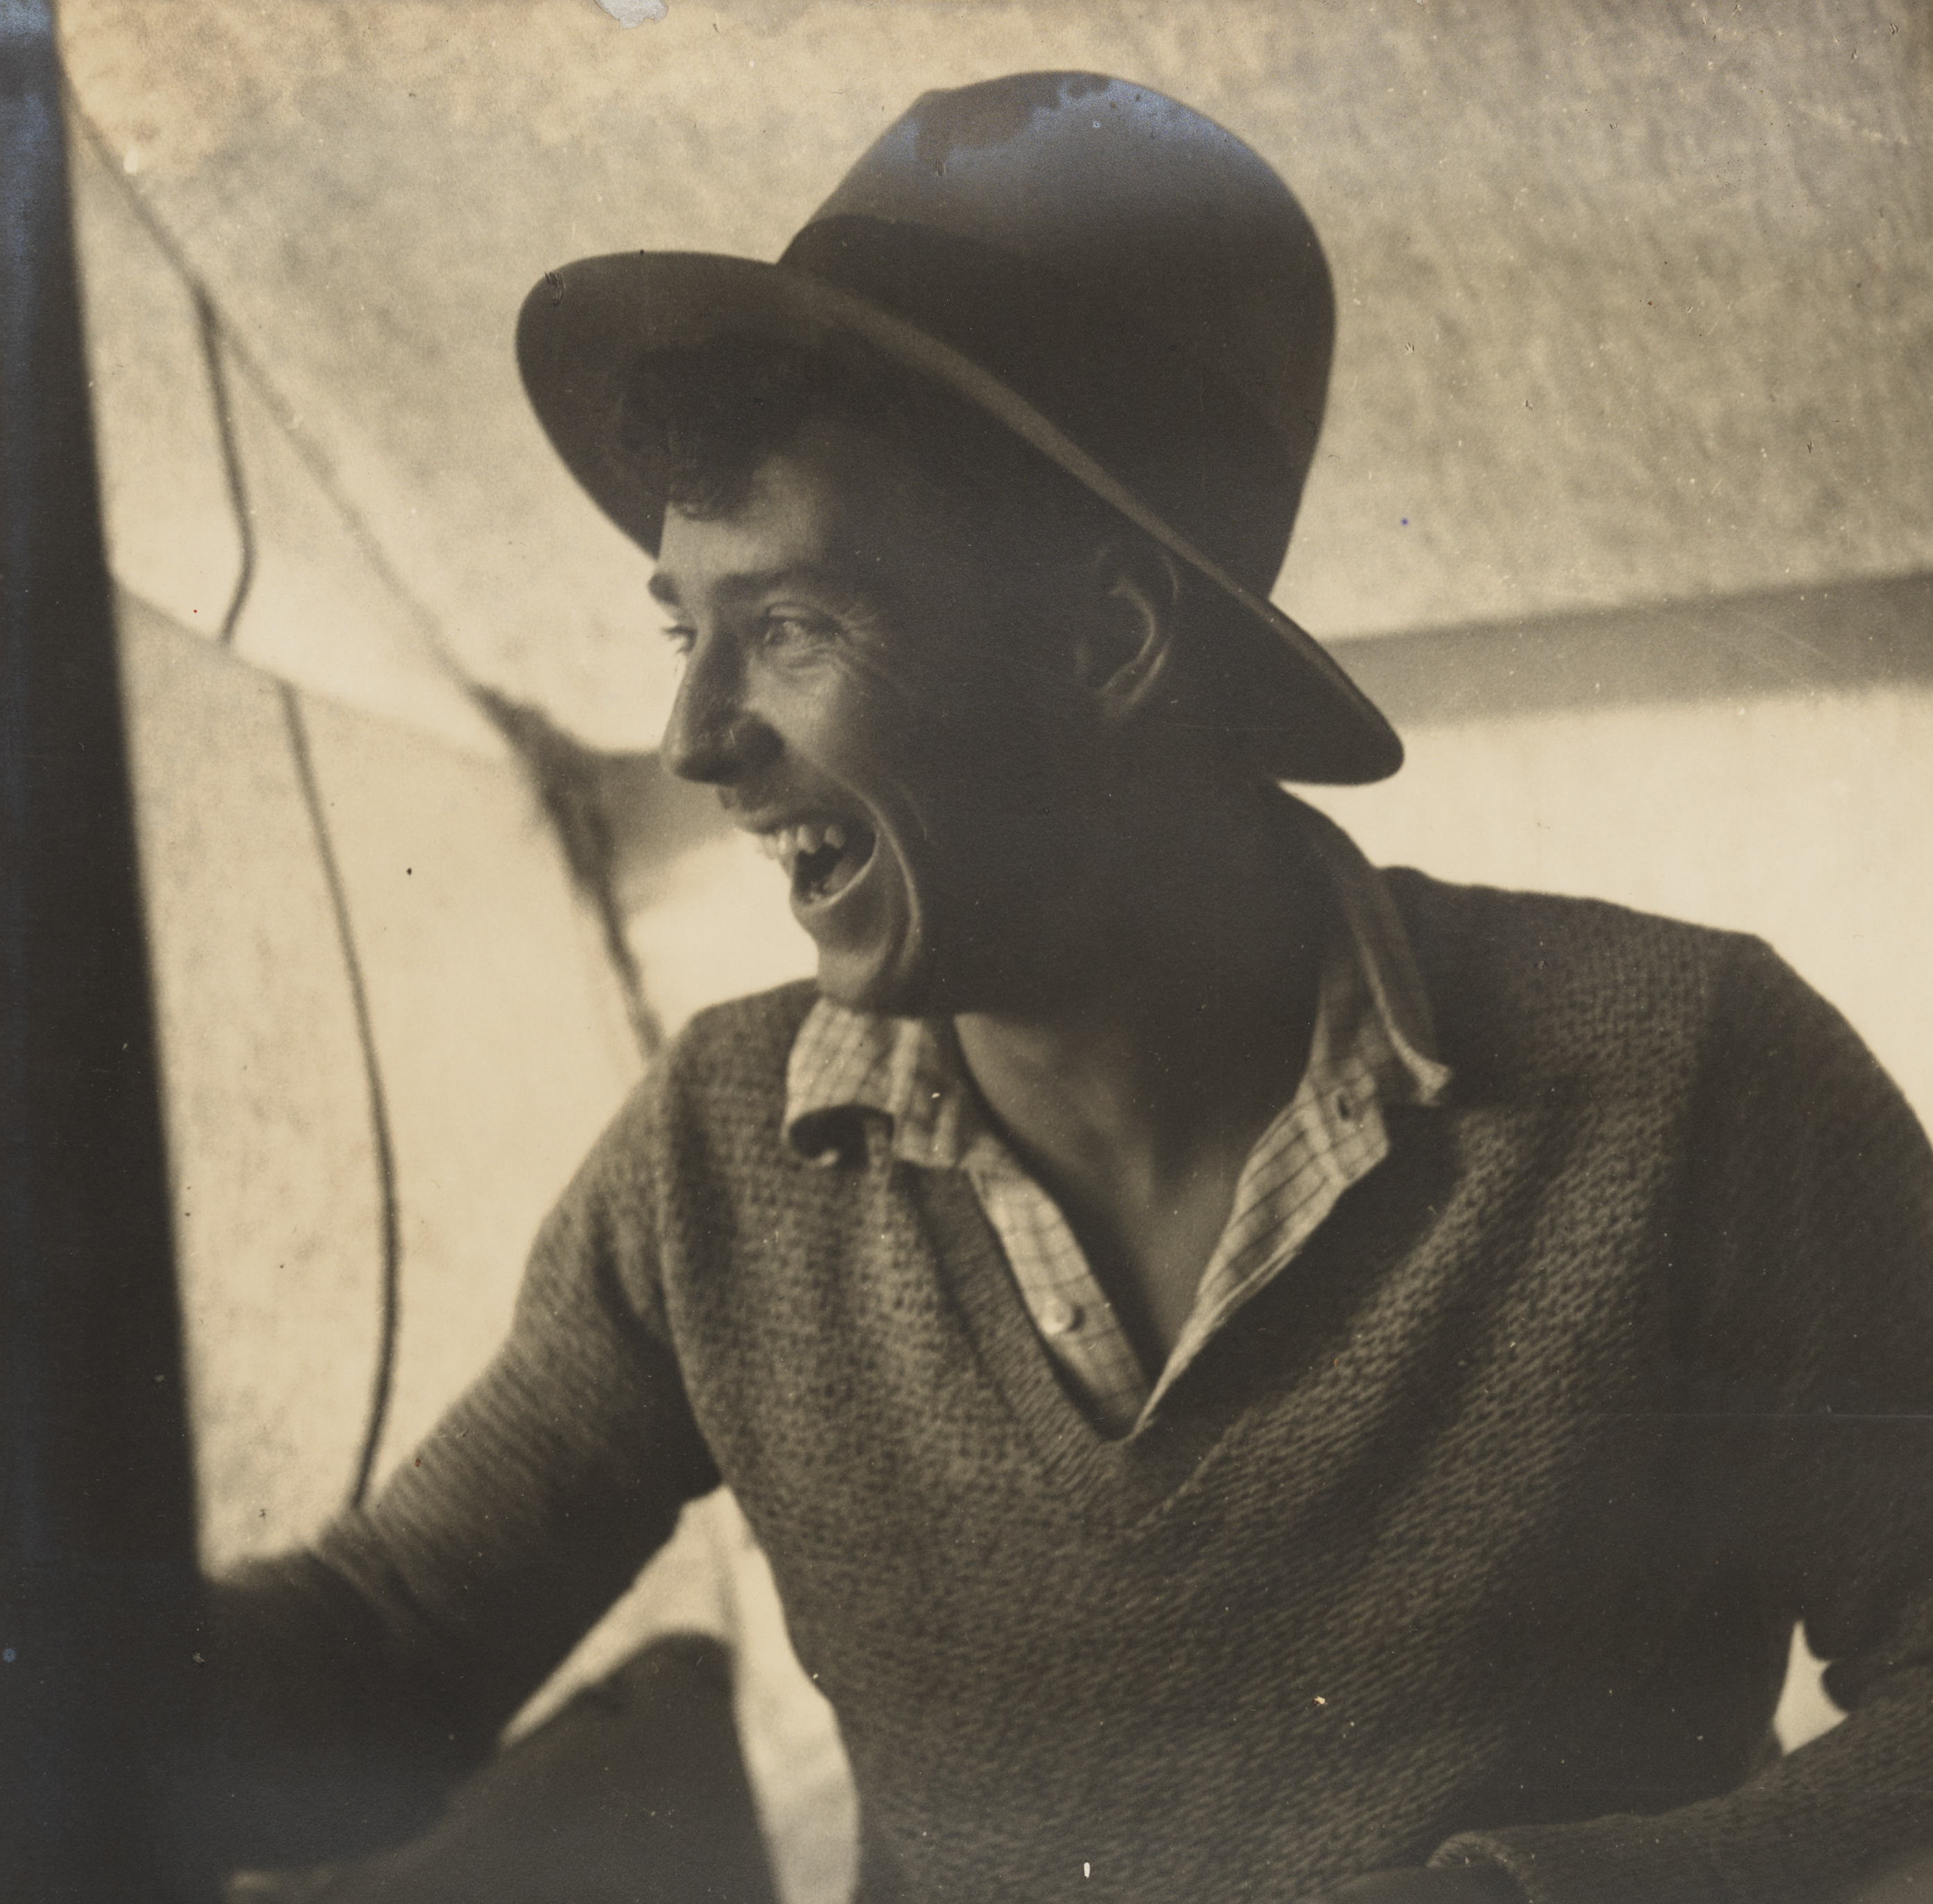 A sepia photograph of a man wearing a hat, checked shirt and wollen jumper sitting inside a canvas structure, looking off to the side laughing.